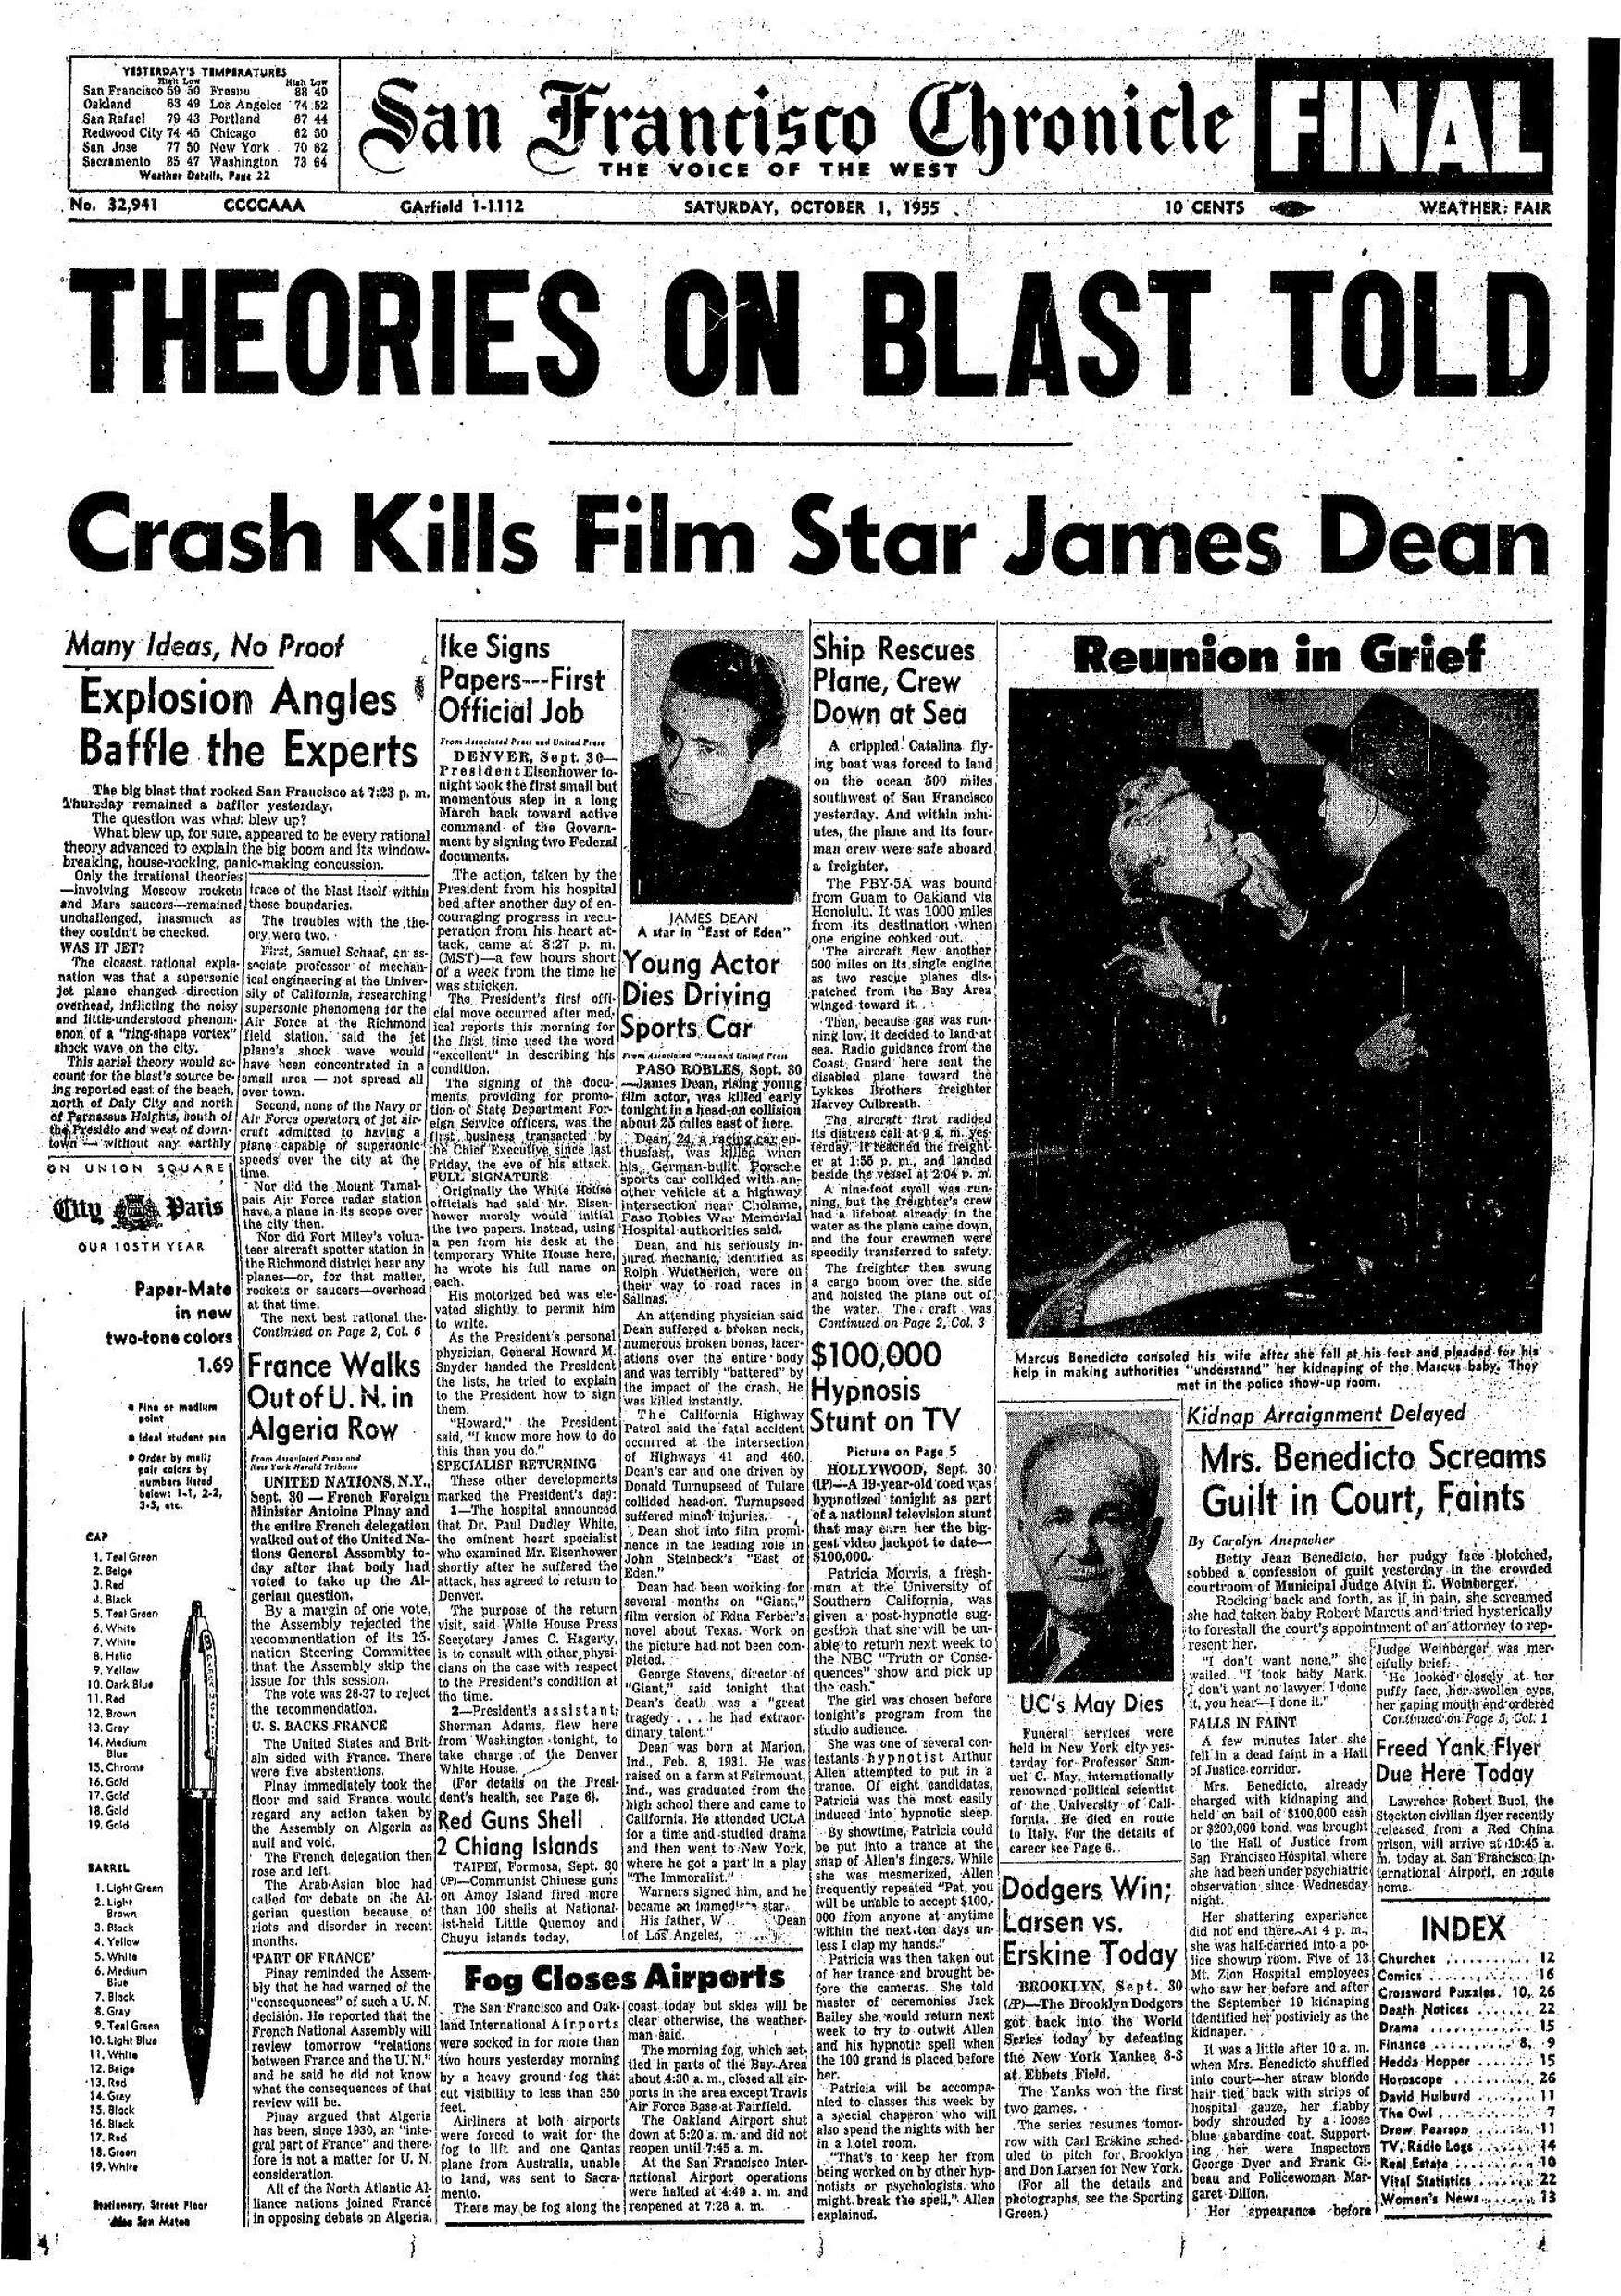 Chronicle Covers: The night James Dean died - SFChronicle.com